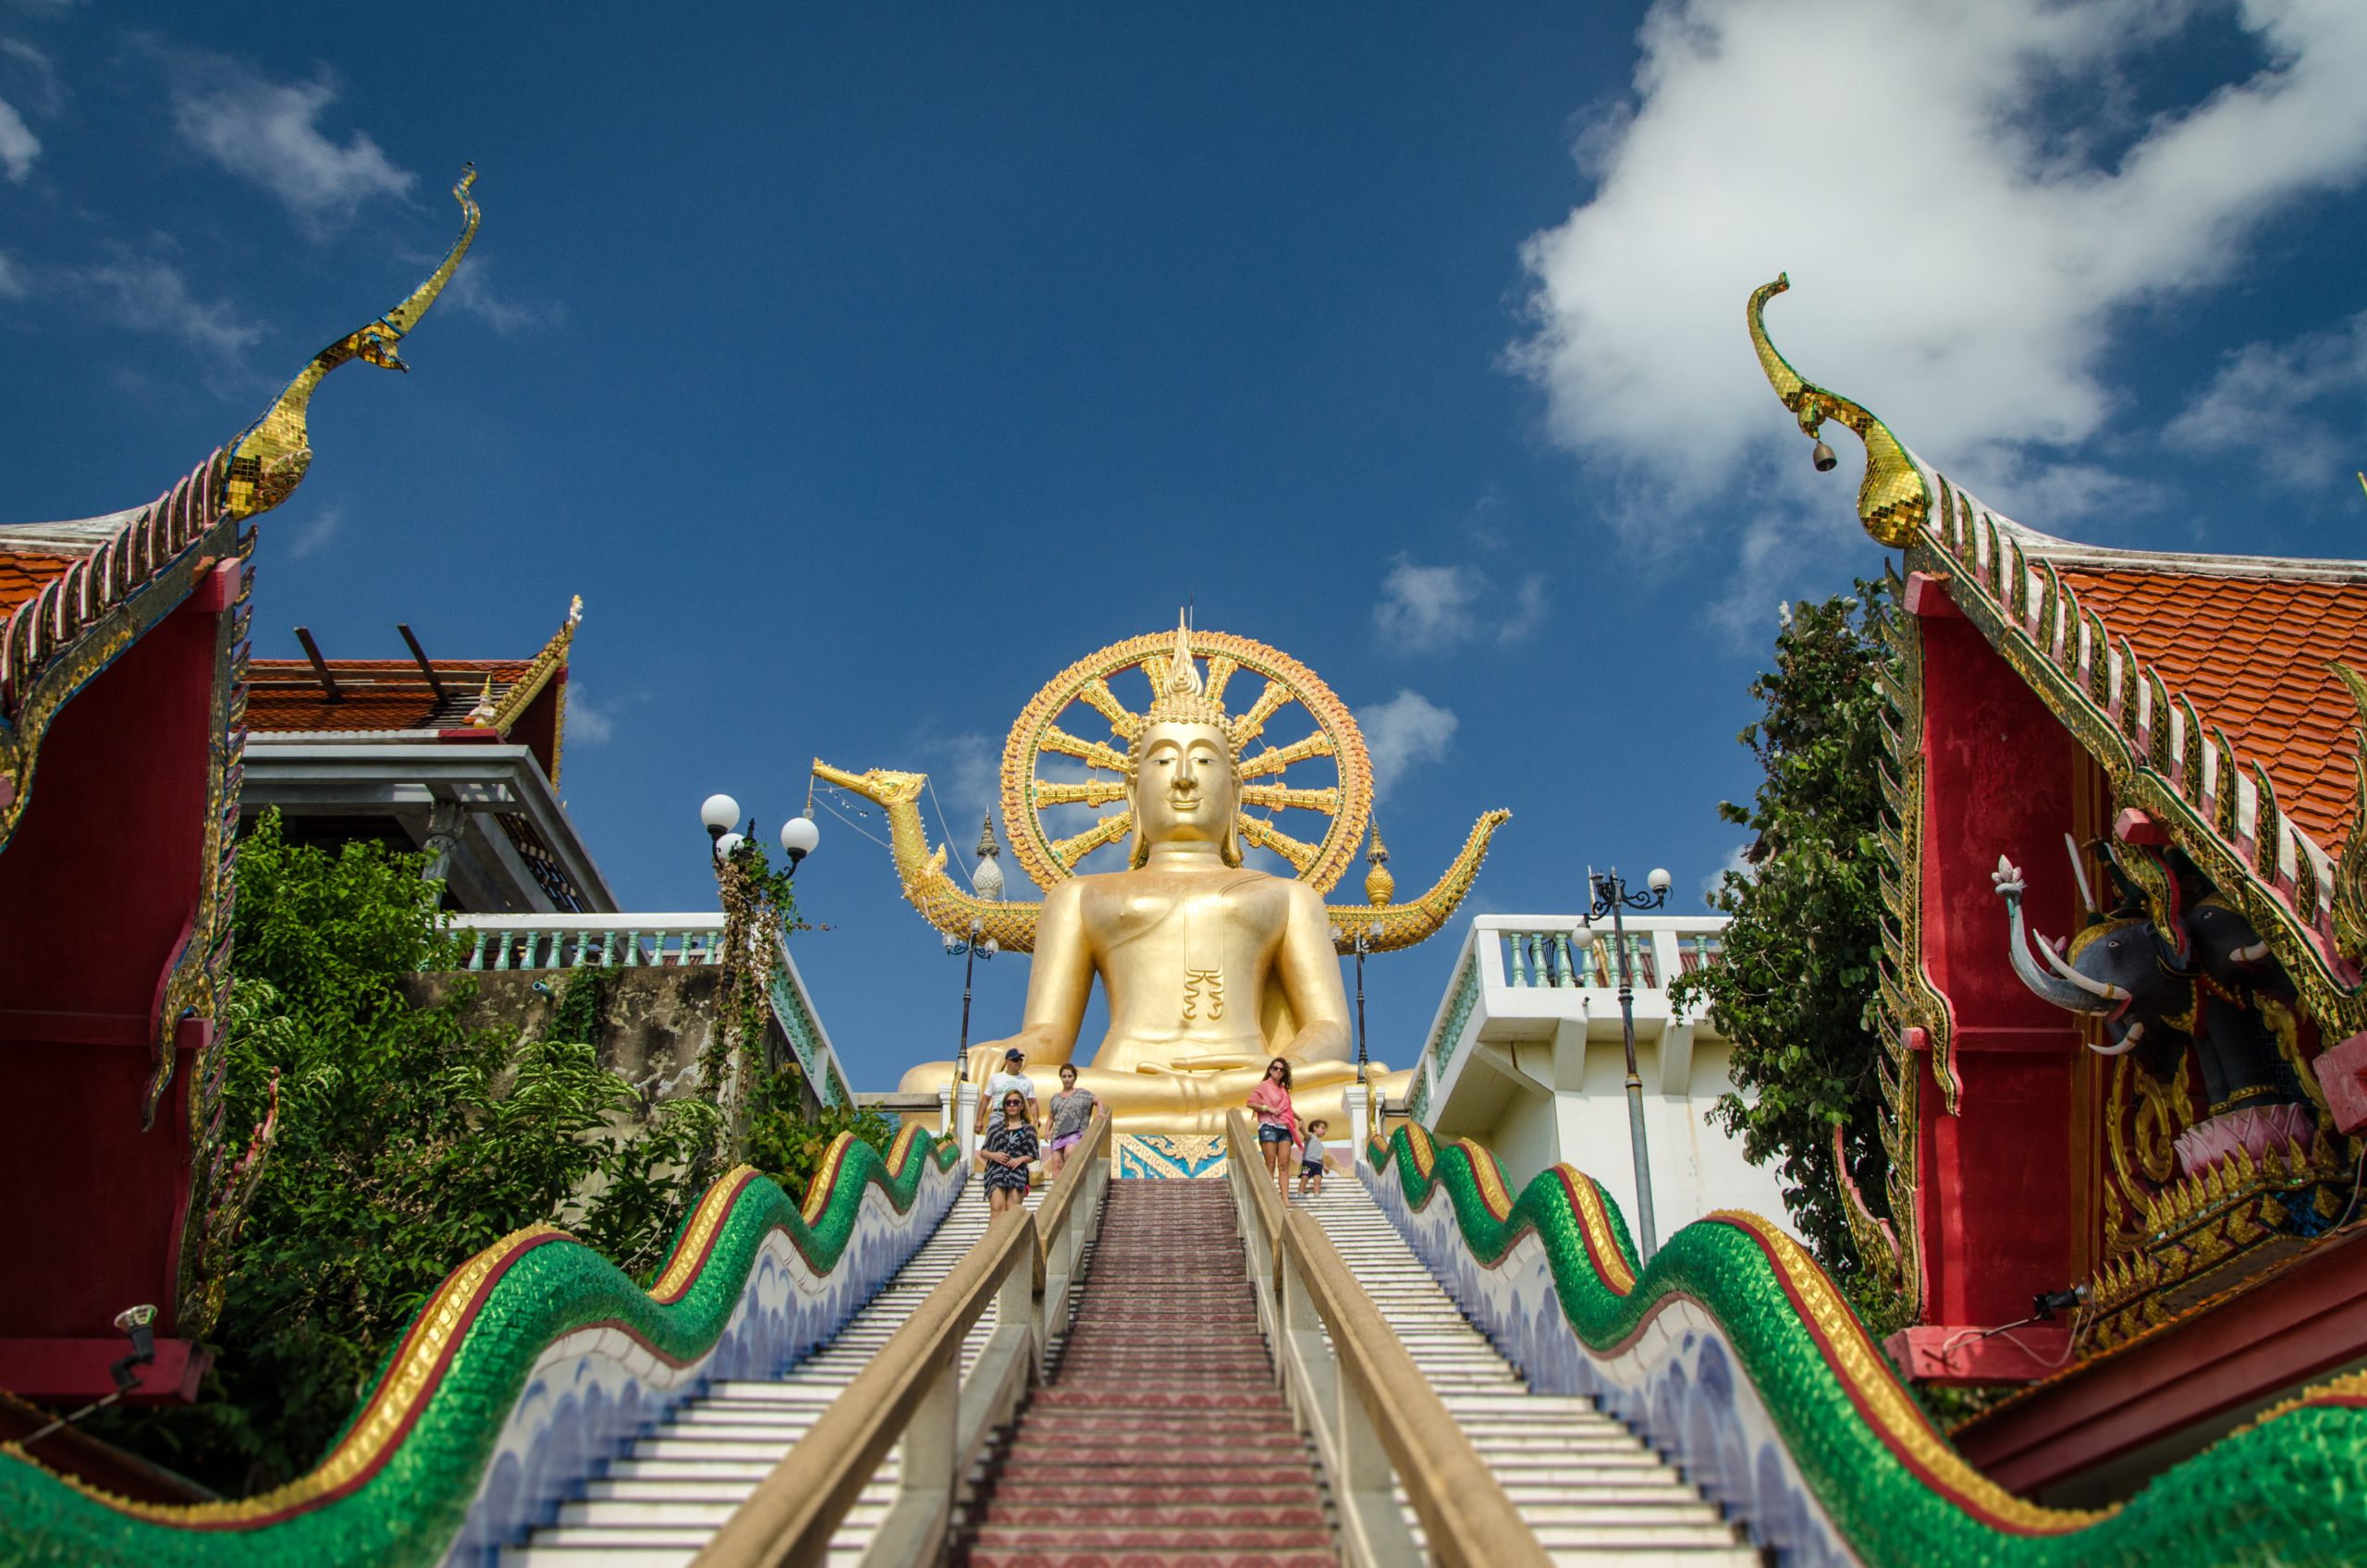 A photo from the Big Buddha in Samui, Thailand